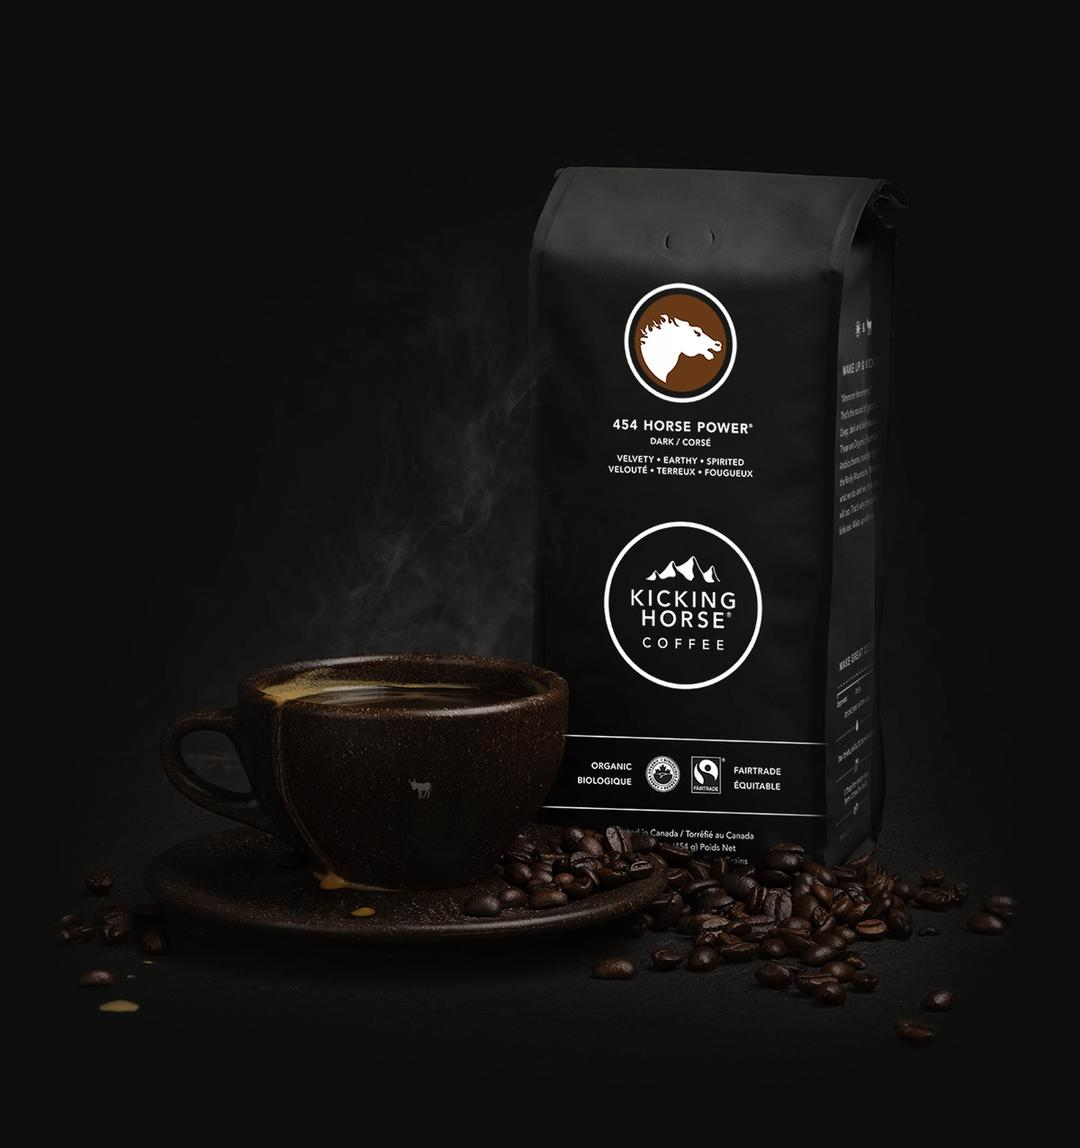 A cup of coffee, with a bag of coffee and some coffee beans